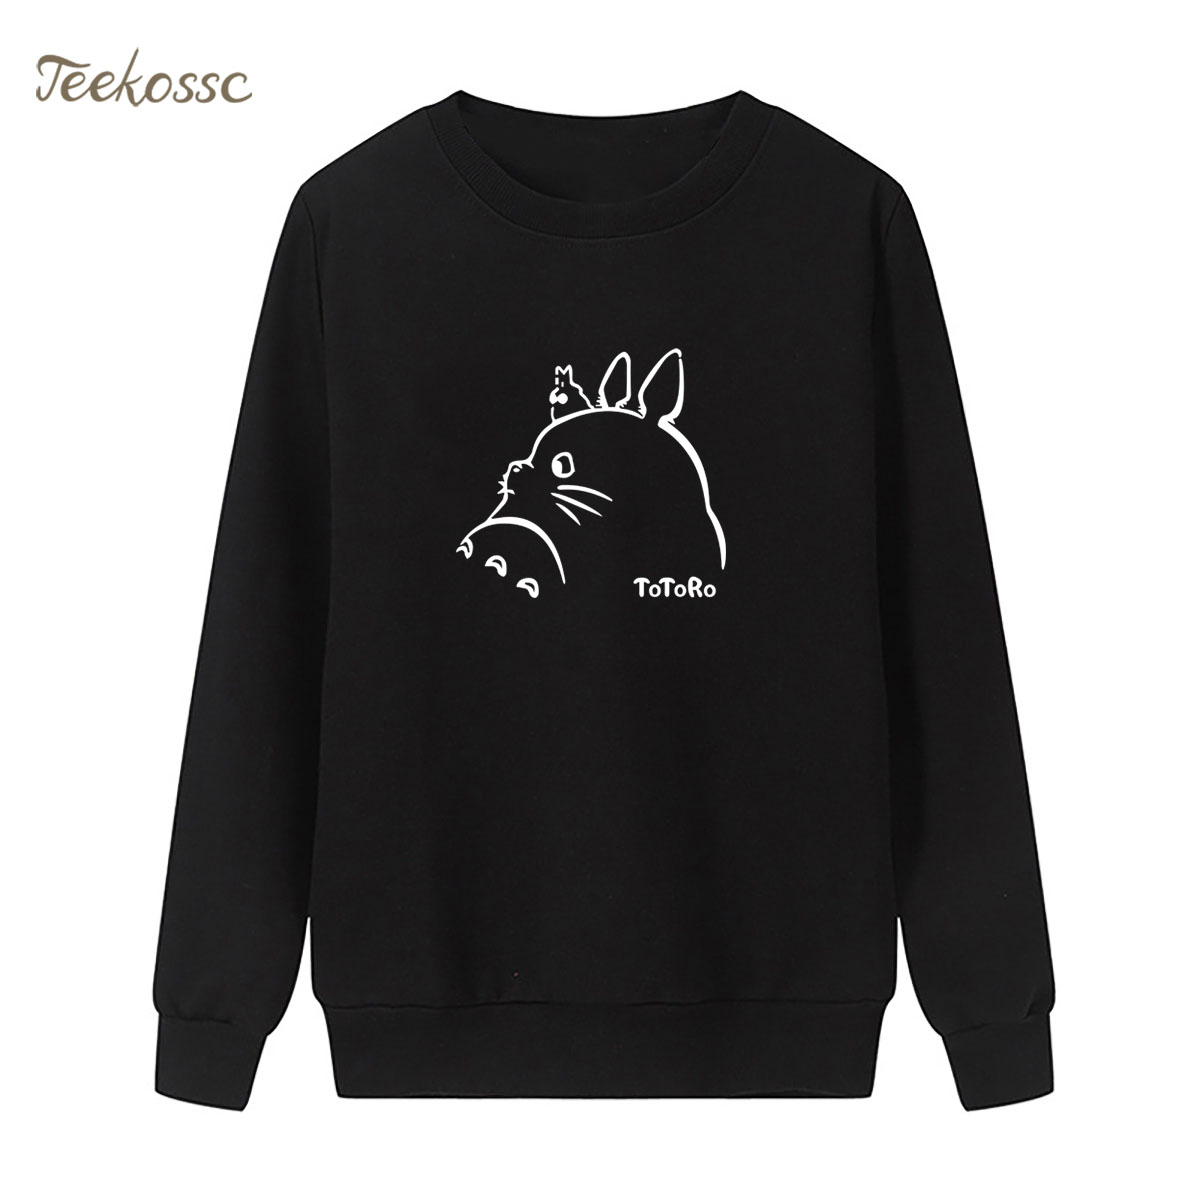 Anime Kawaii Totoro Sweatshirt Print Hoodie 2018 Winter Autumn Women Lasdies Pullover Loose Fleece Streetwear Cute Sportswear